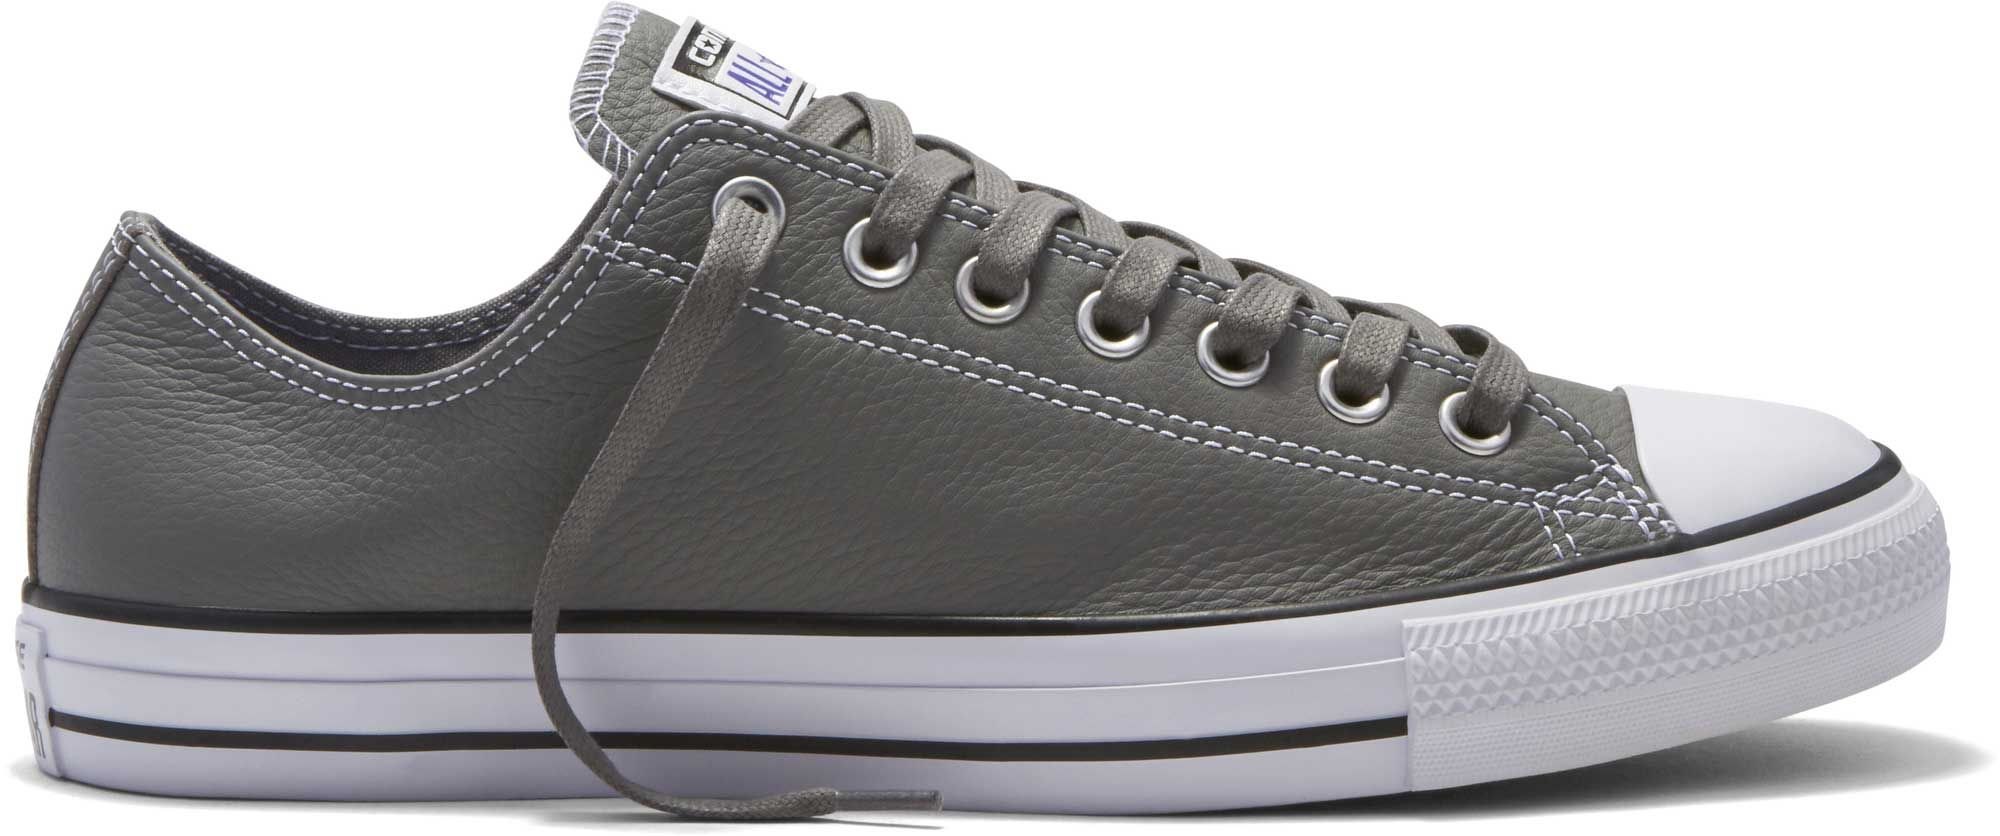 Converse Chuck Taylor All Star Leather Shoes in Grey 153817C